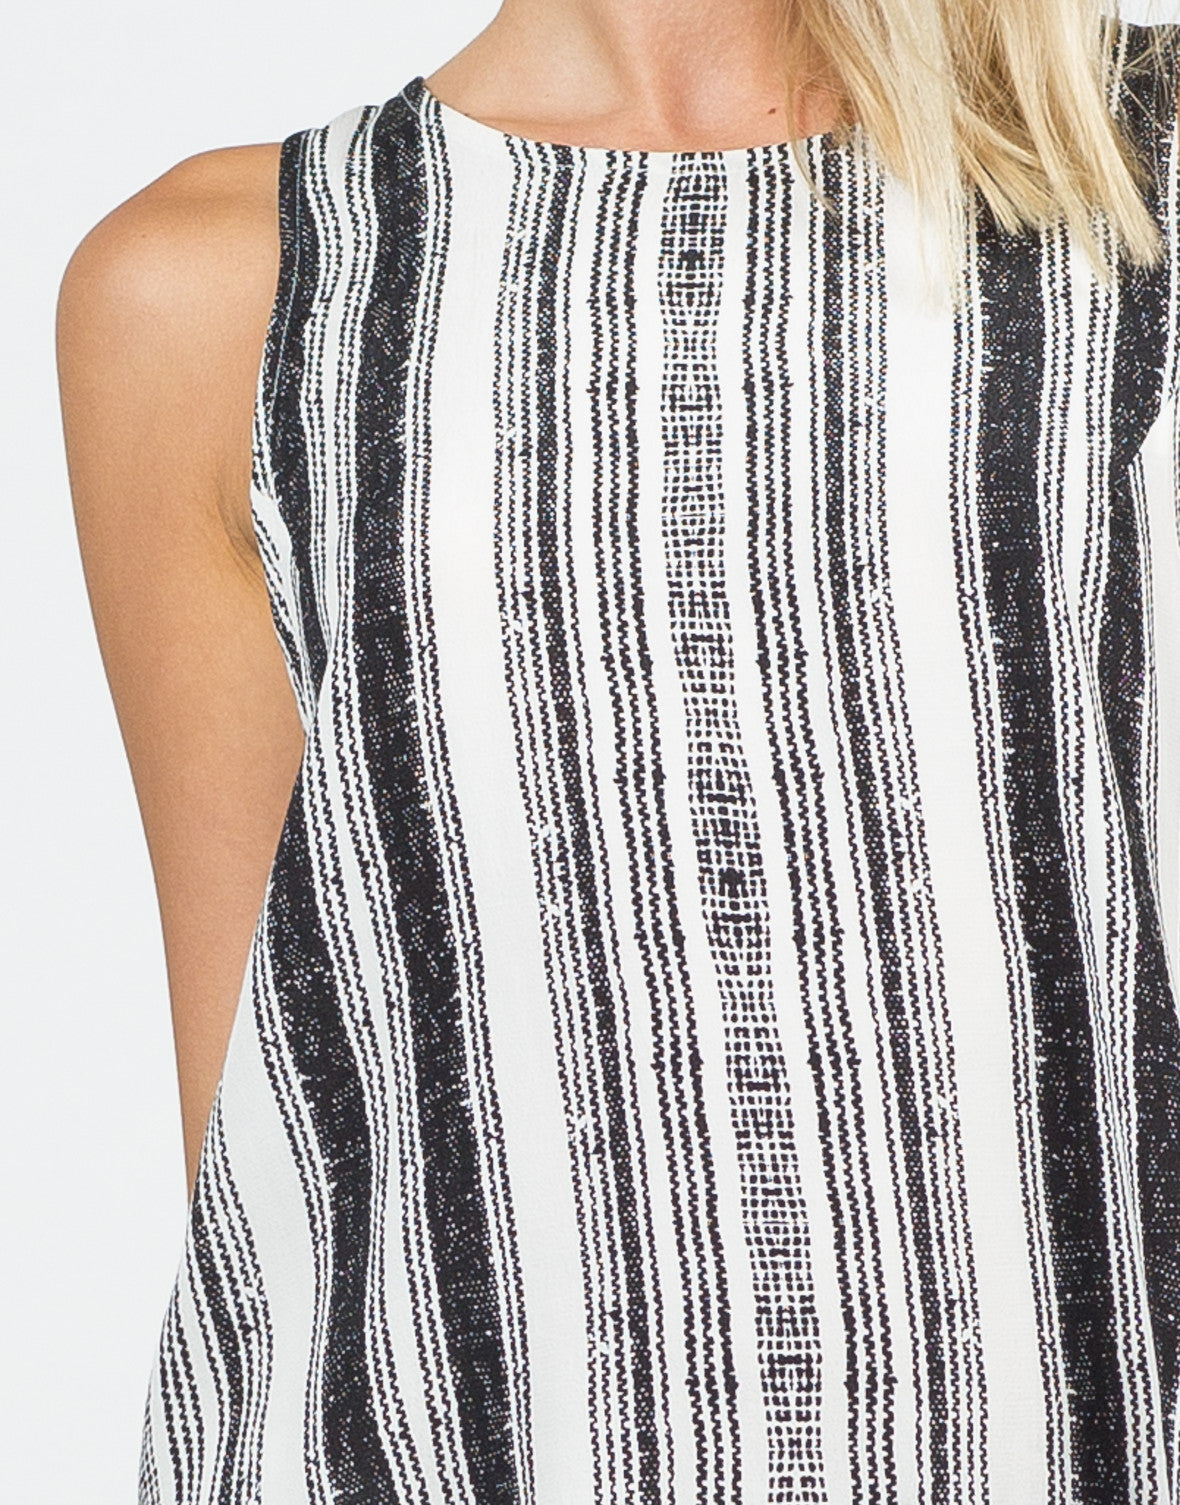 Detail of Skid Printed Sleeveless Top